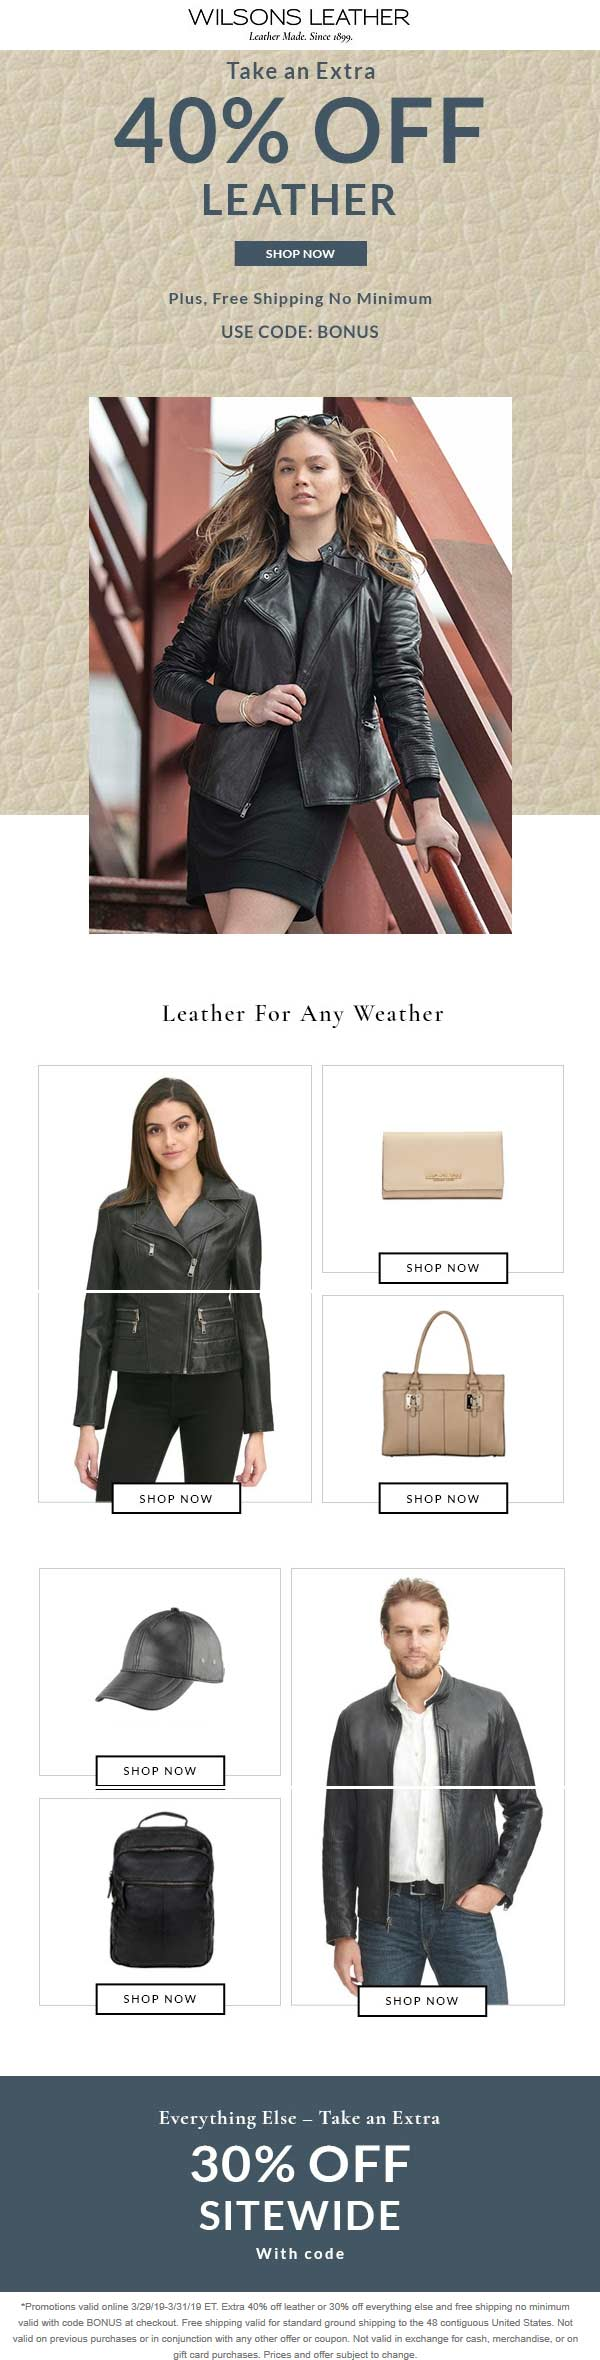 Wilsons Leather coupons & promo code for [January 2021]